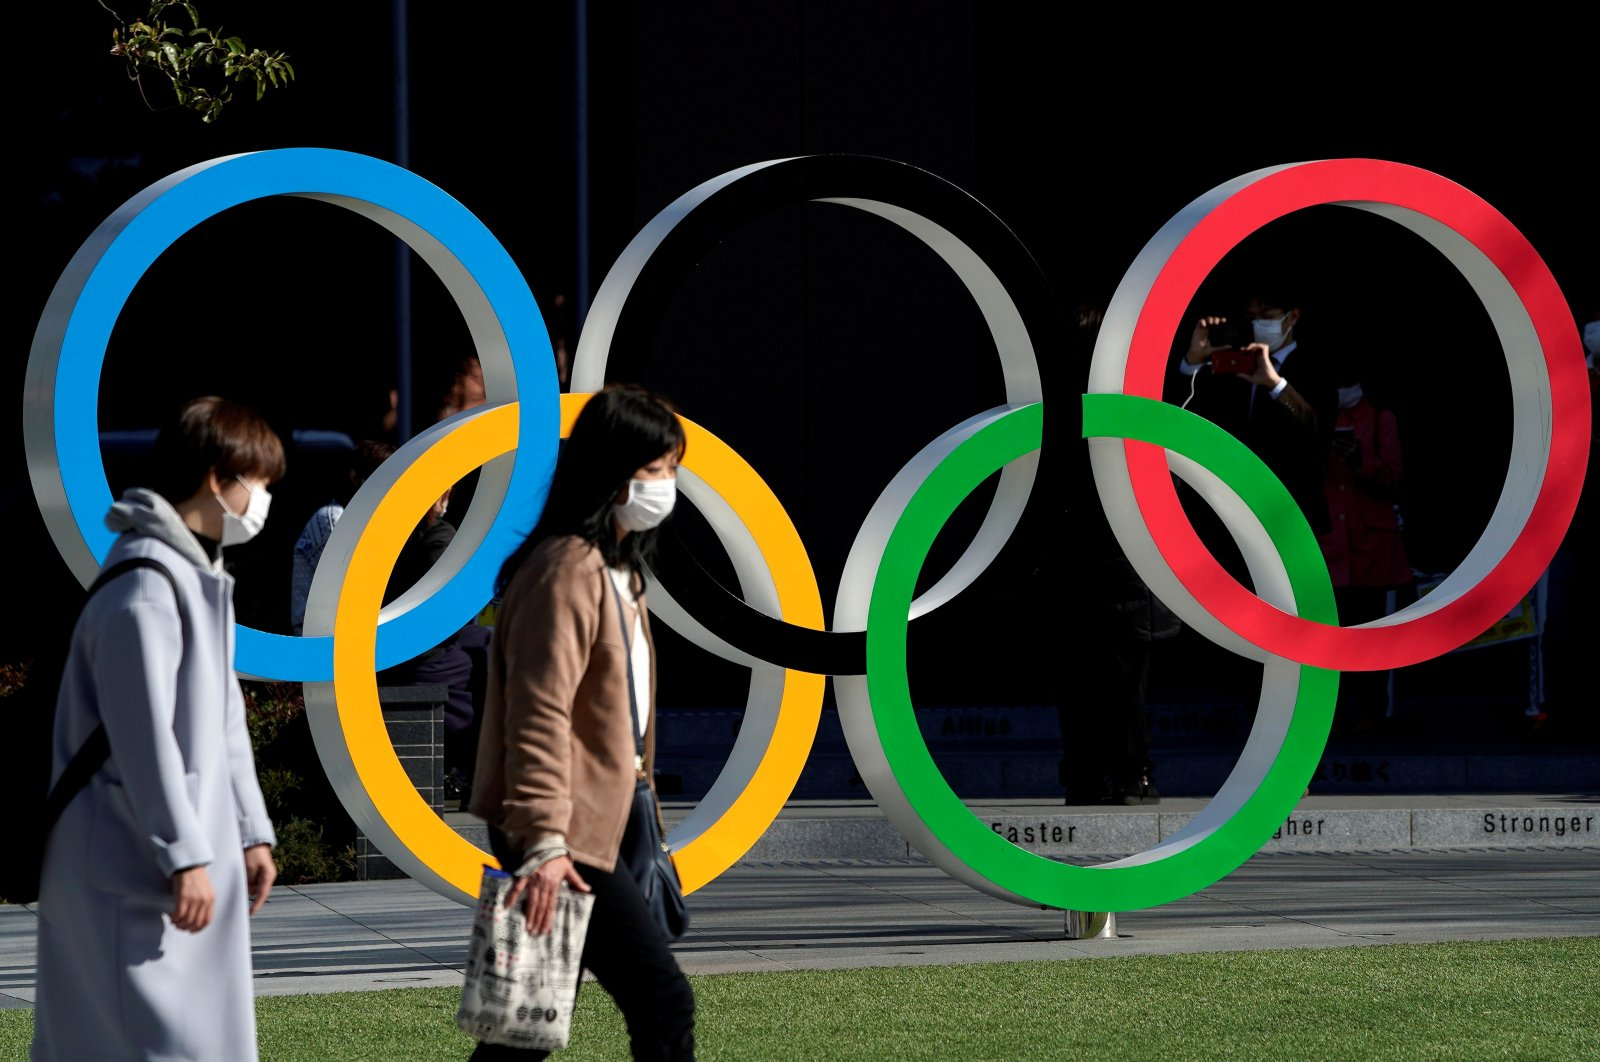 Women wearing protective face masks against COVID-19 walk past the Olympic rings in front of the Japan Olympics Museum, Tokyo, Japan, March 25, 2020. (Reuters Photo)